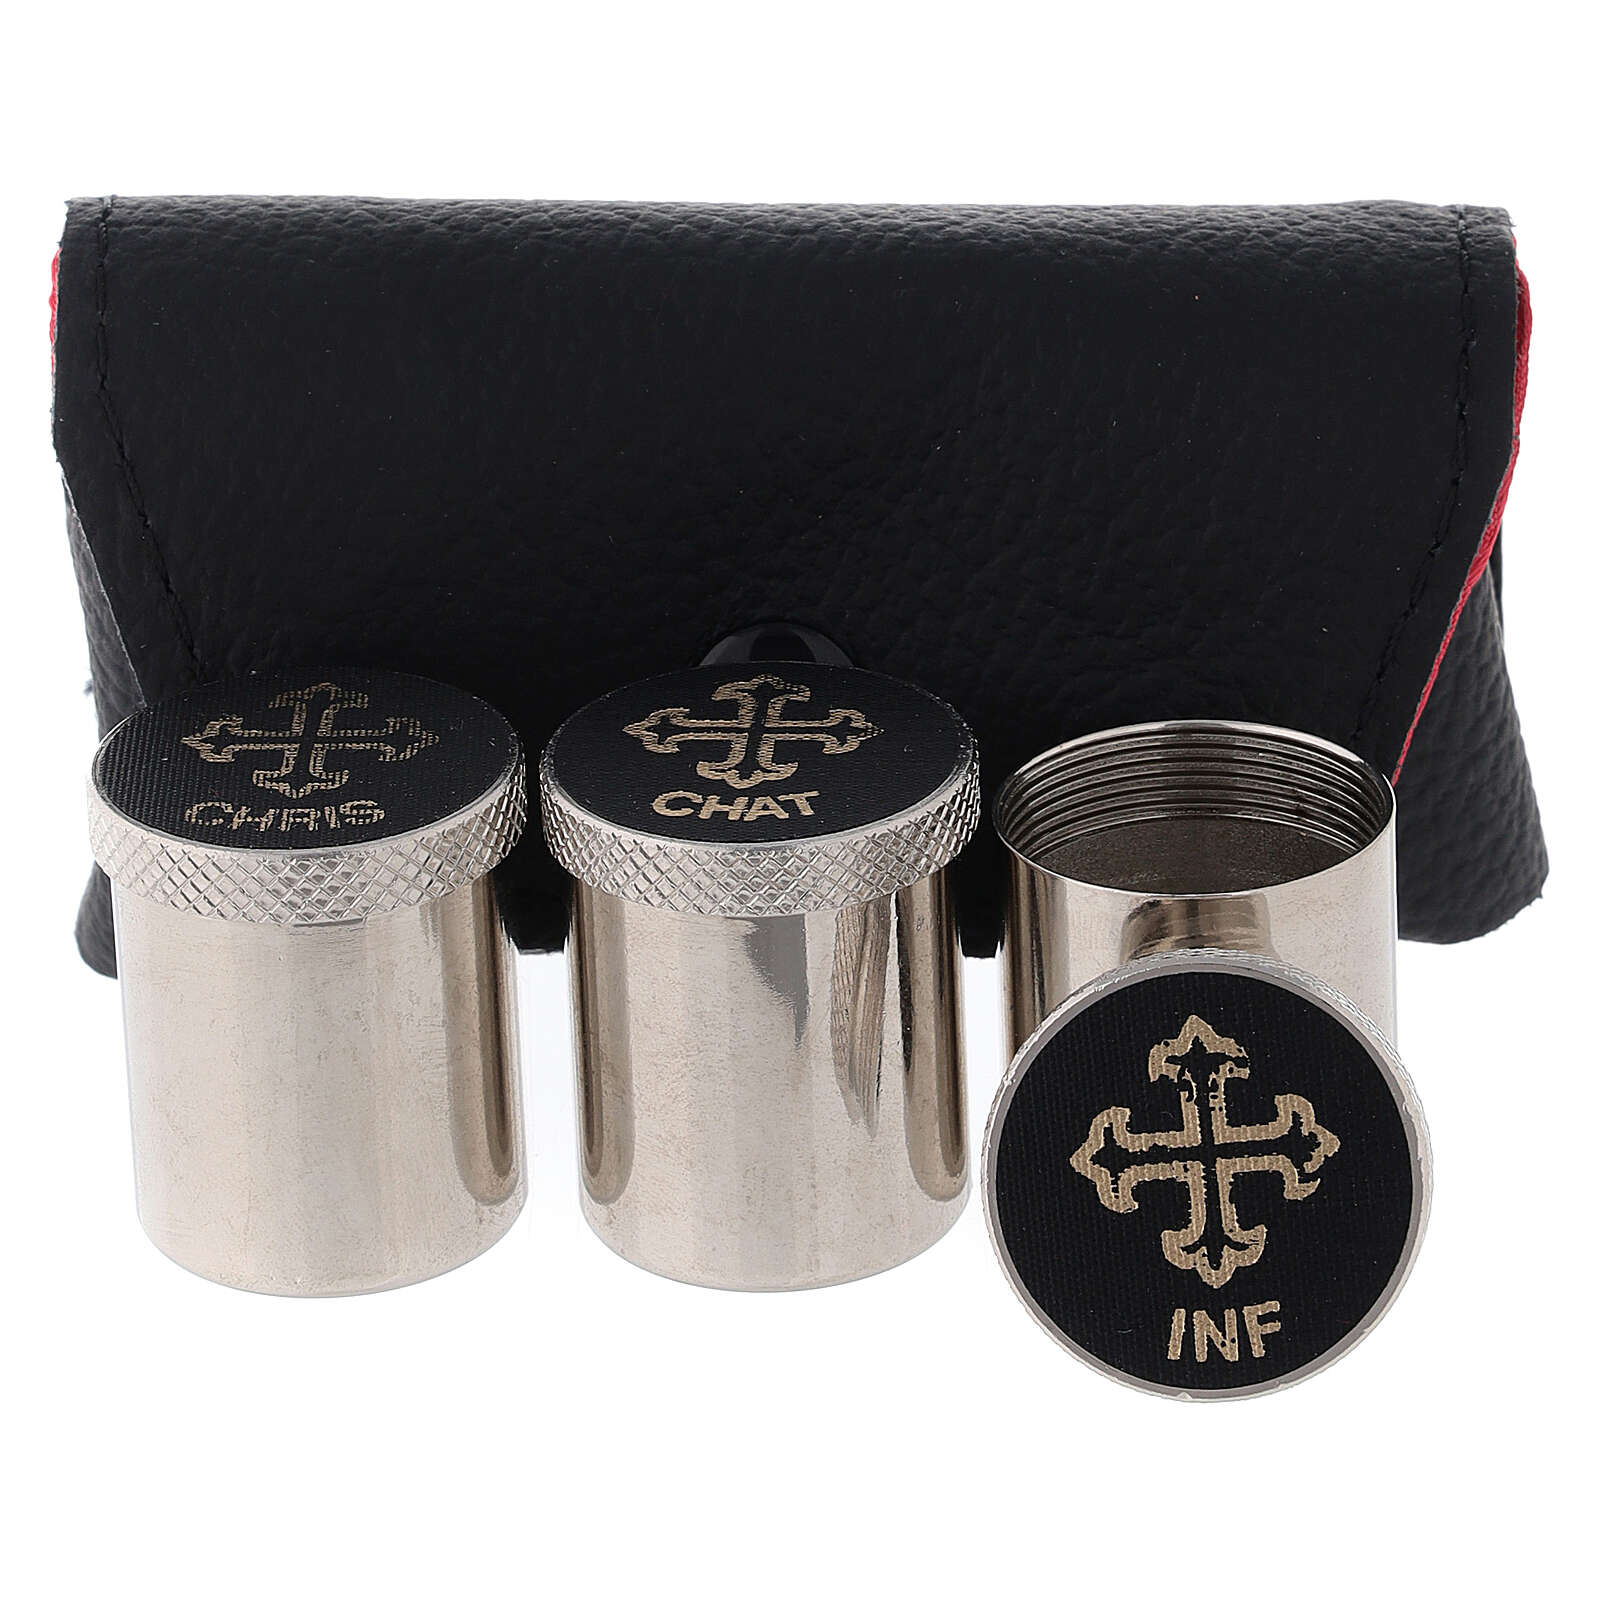 Holy oil case with INF-CHRIS-CHAT stock 3